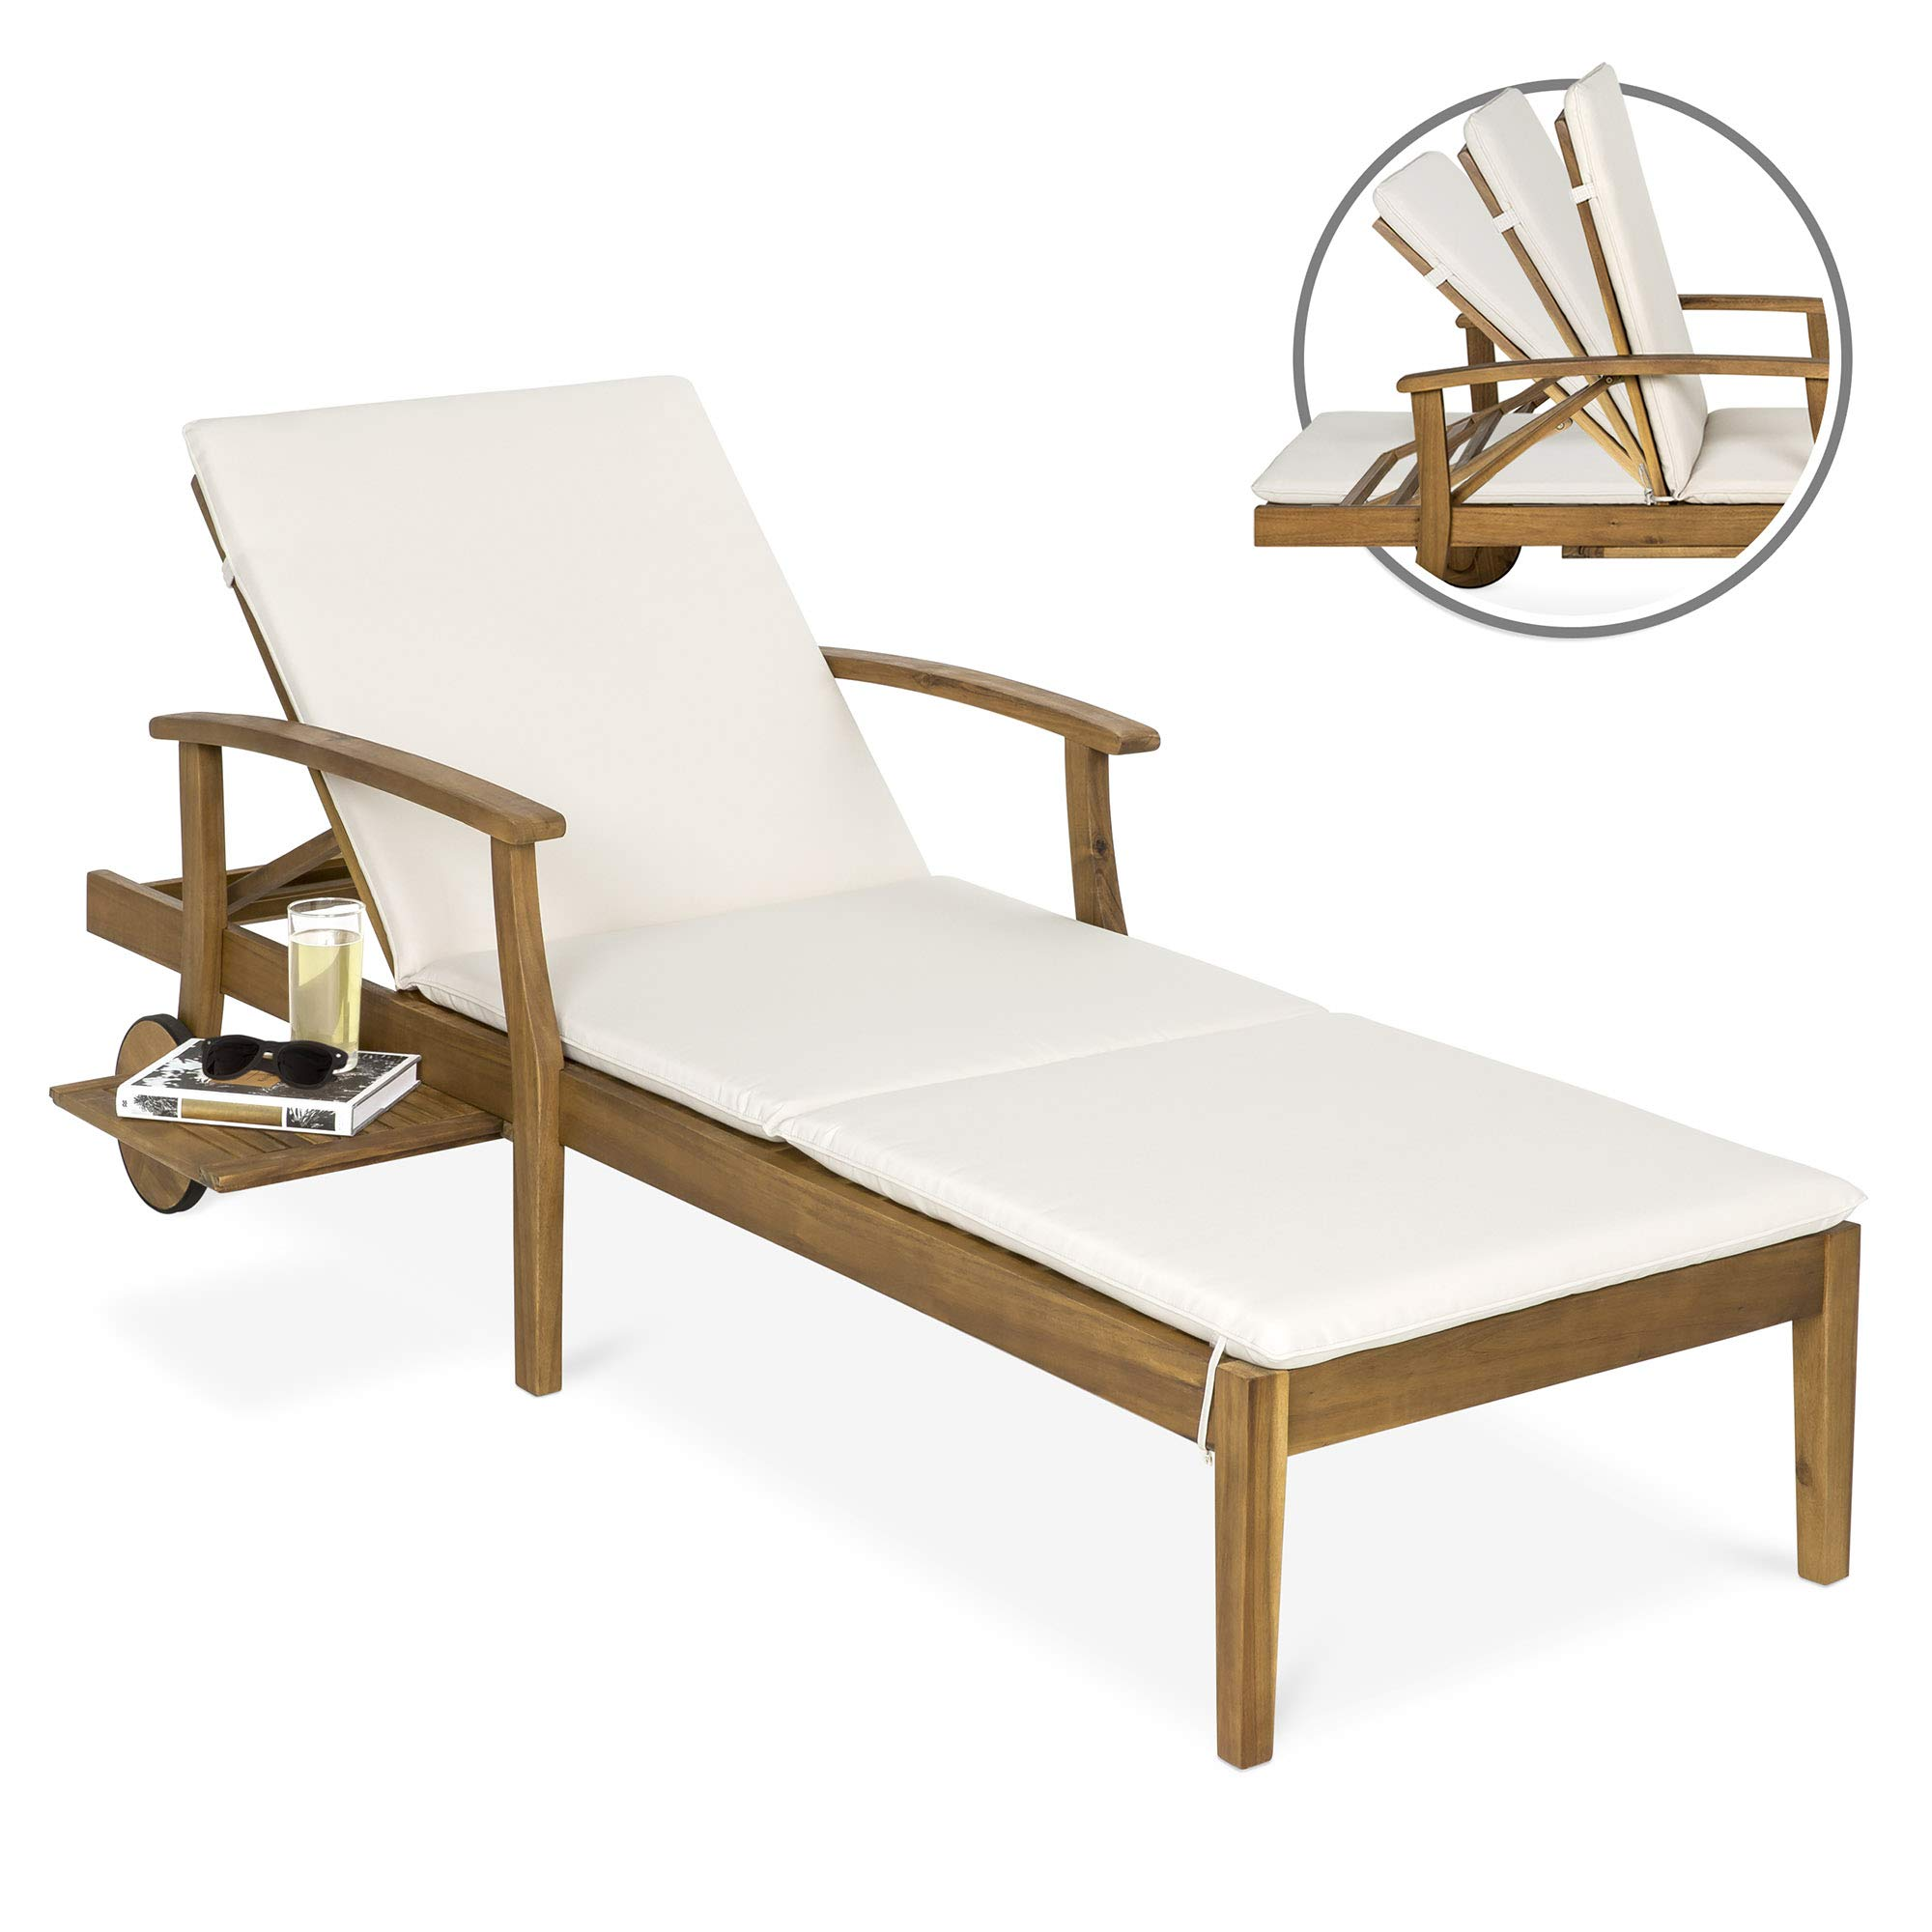 Best Choice Products 79x30in Acacia Wood Chaise Lounge Chair Recliner, Outdoor Furniture for Patio & Poolside w/Slide-Out Side Table, Foam-Padded Cushion, Adjustable Backrest, Wheels for Portability